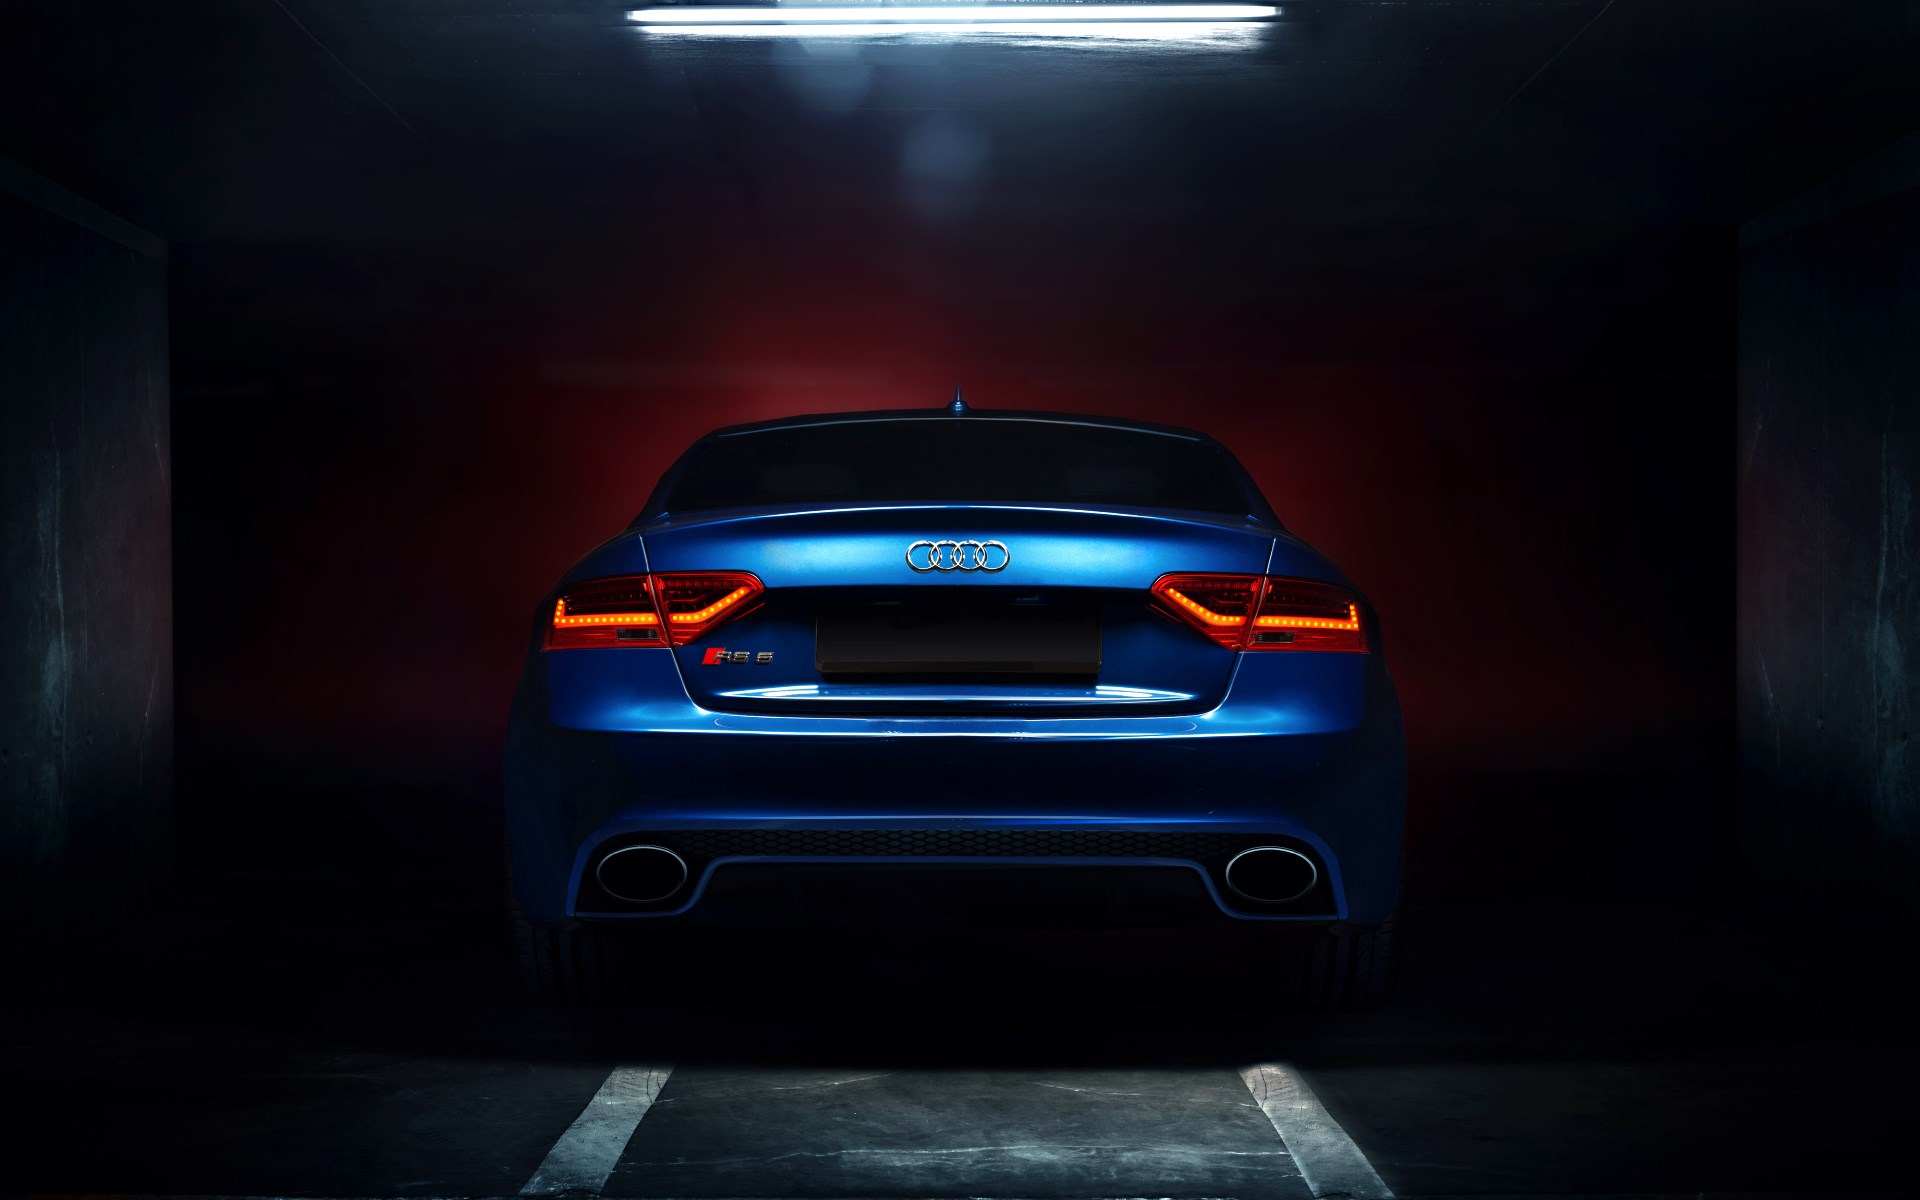 Audi Rs5 Coupe Tuning Blue Car Backlights Glow Wallpaper 1920x1200 15927